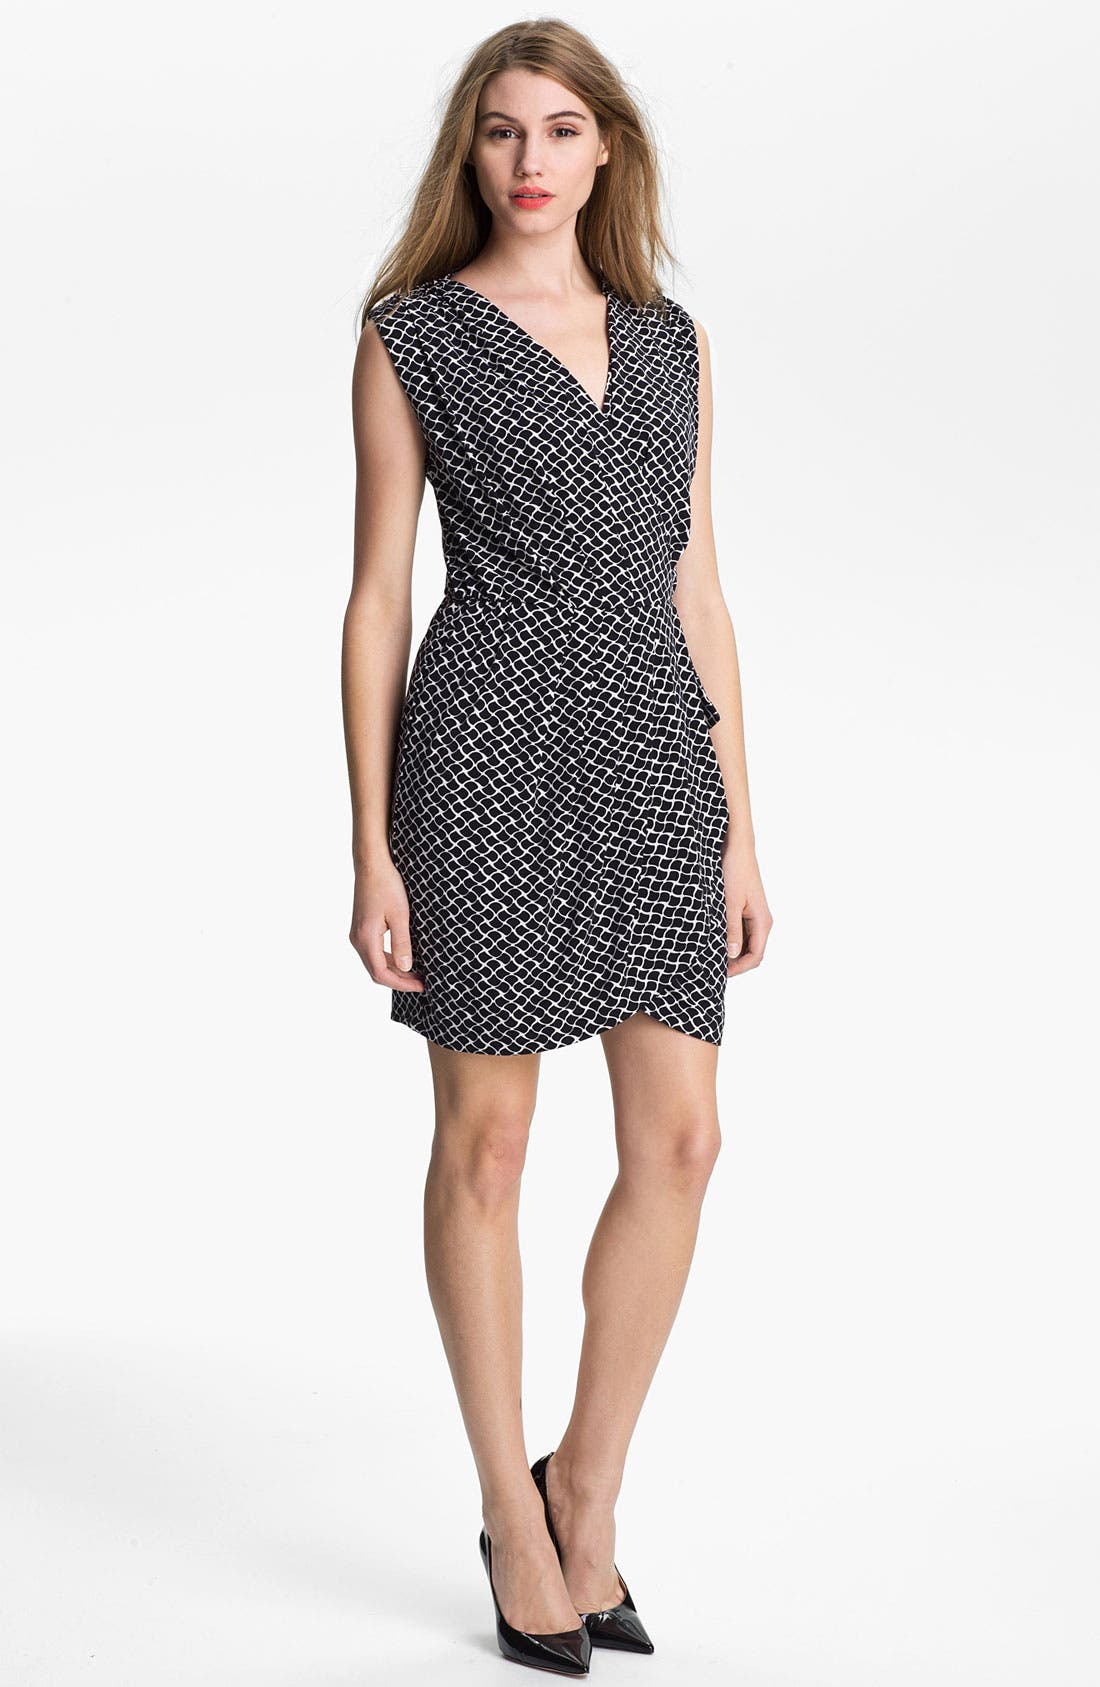 Main Image - Vince Camuto 'Swirling Teardrop' Faux Wrap Dress